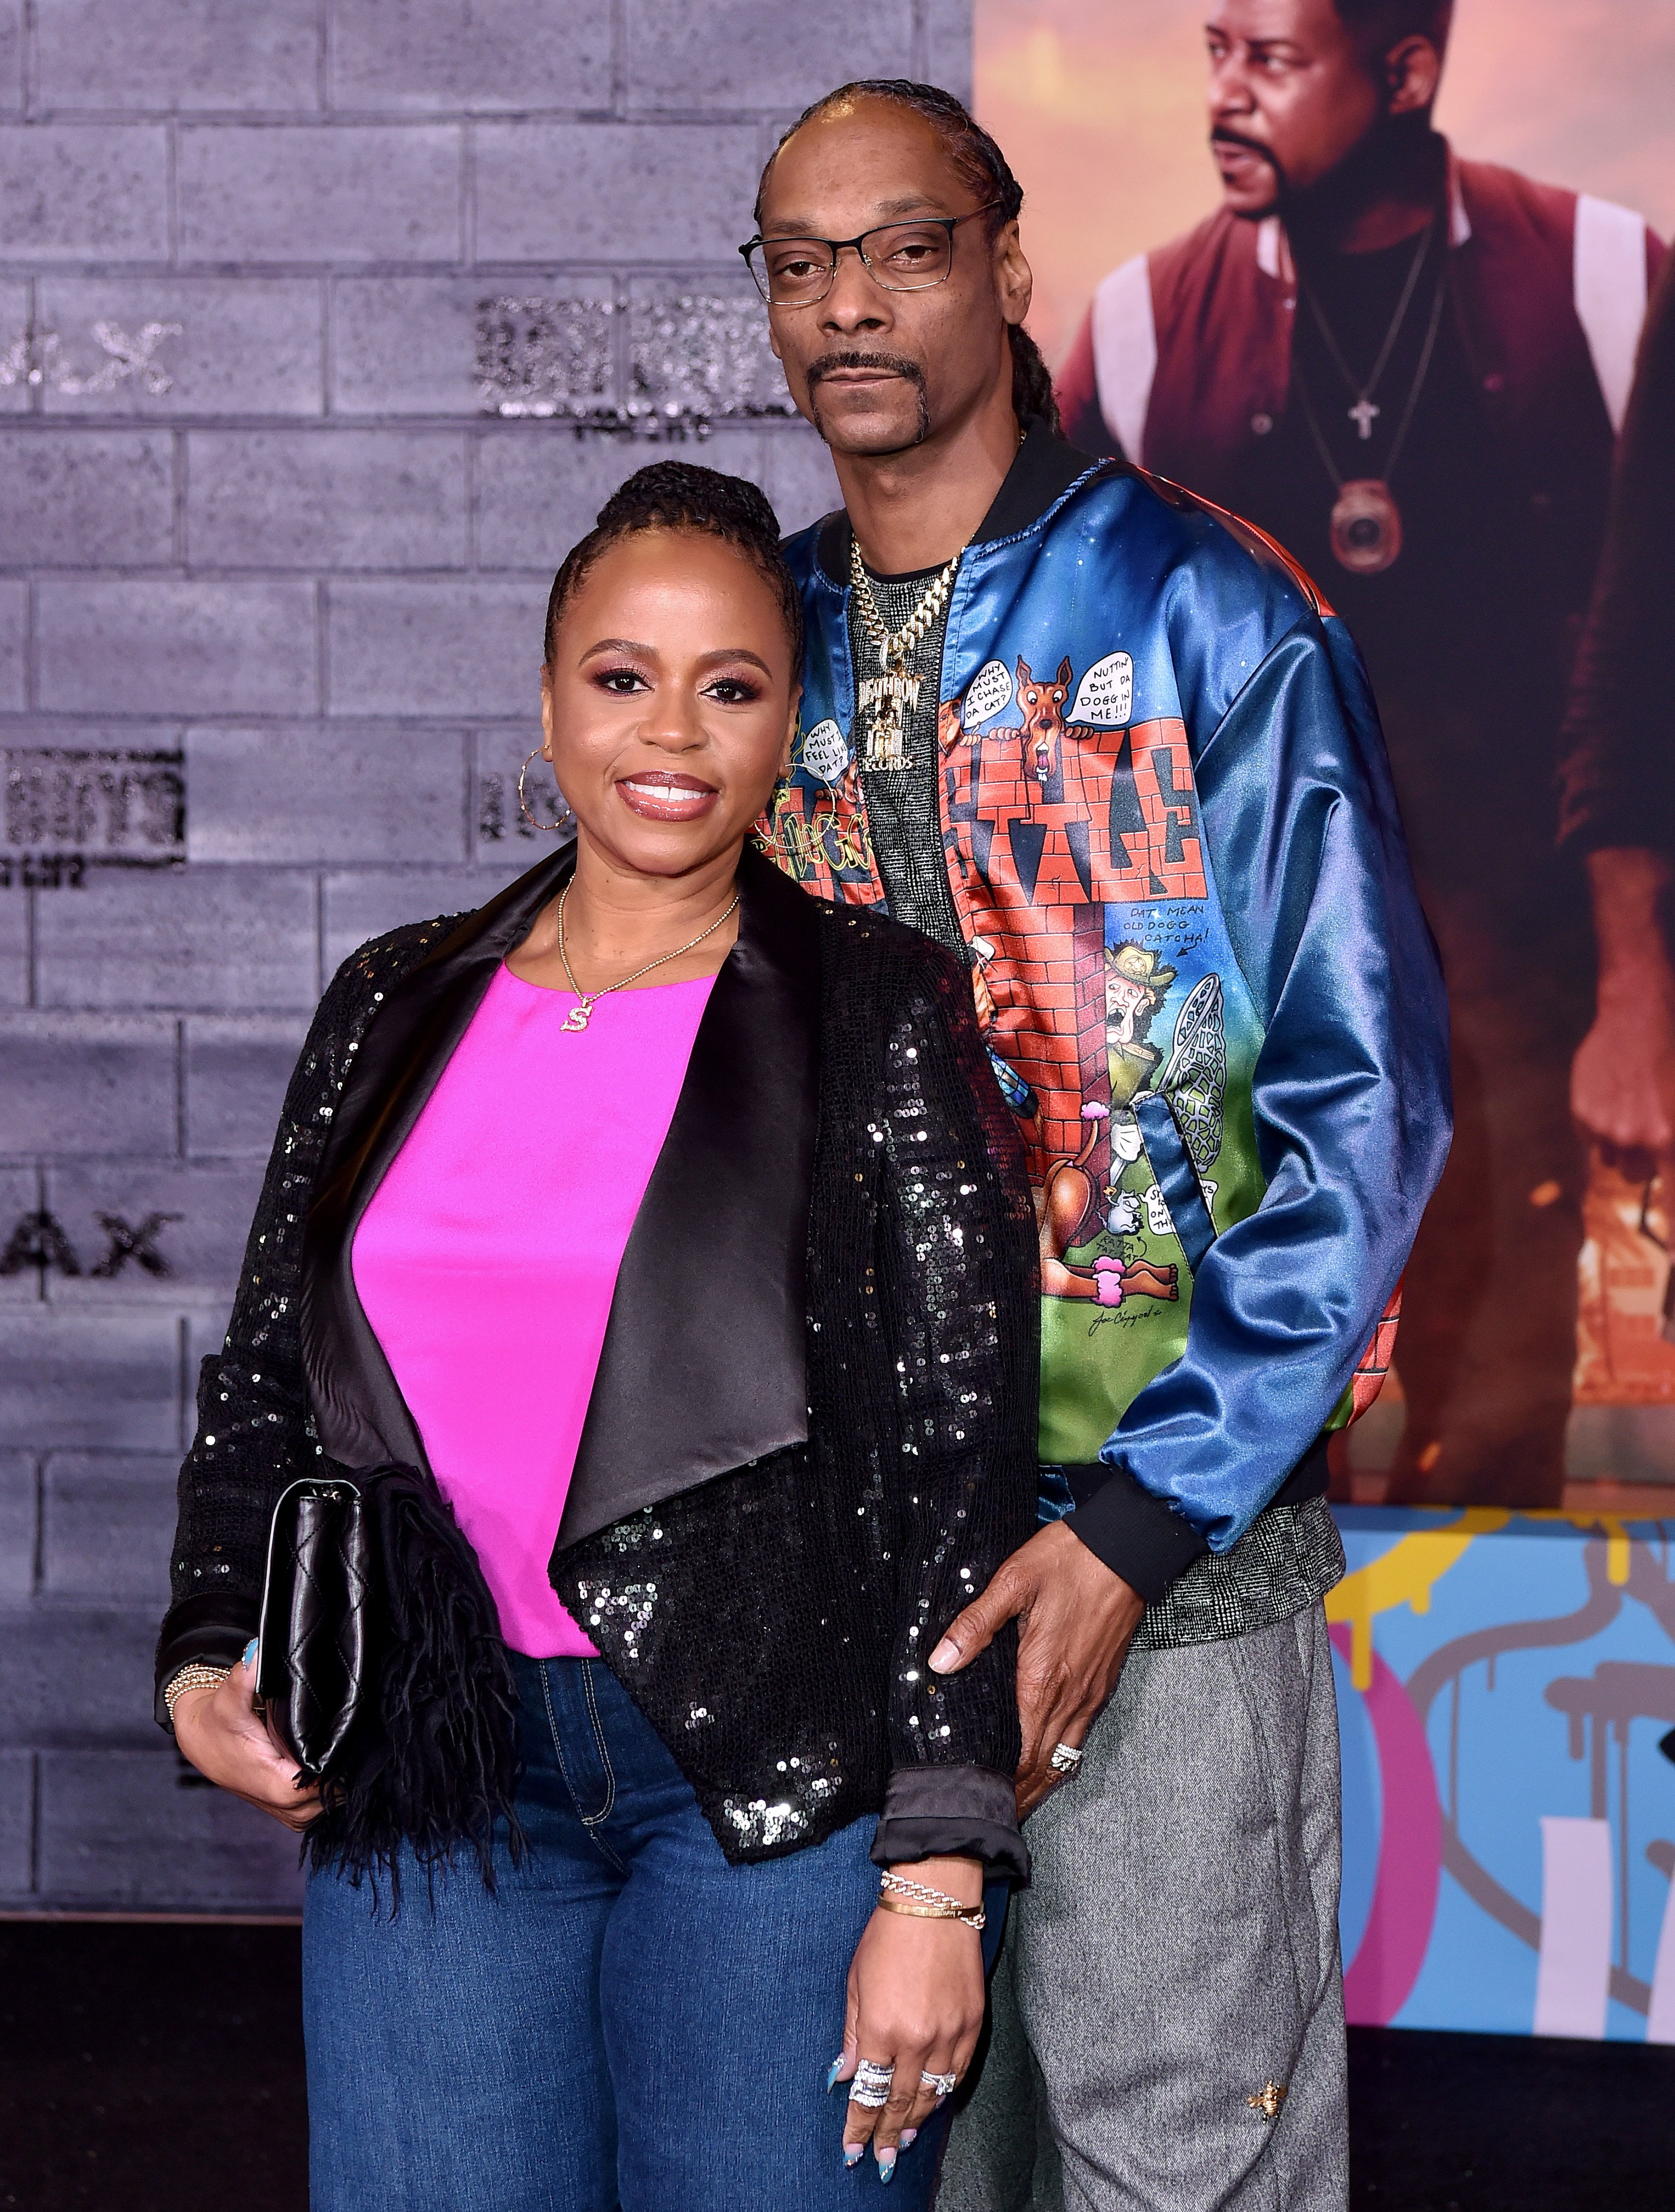 """Shante Broadus and Snoop Dogg at the """"Bad Boys for Life"""" premiere at TCL Chinese Theatre on January 14, 2020 in Hollywood, California. Source: Getty Images"""